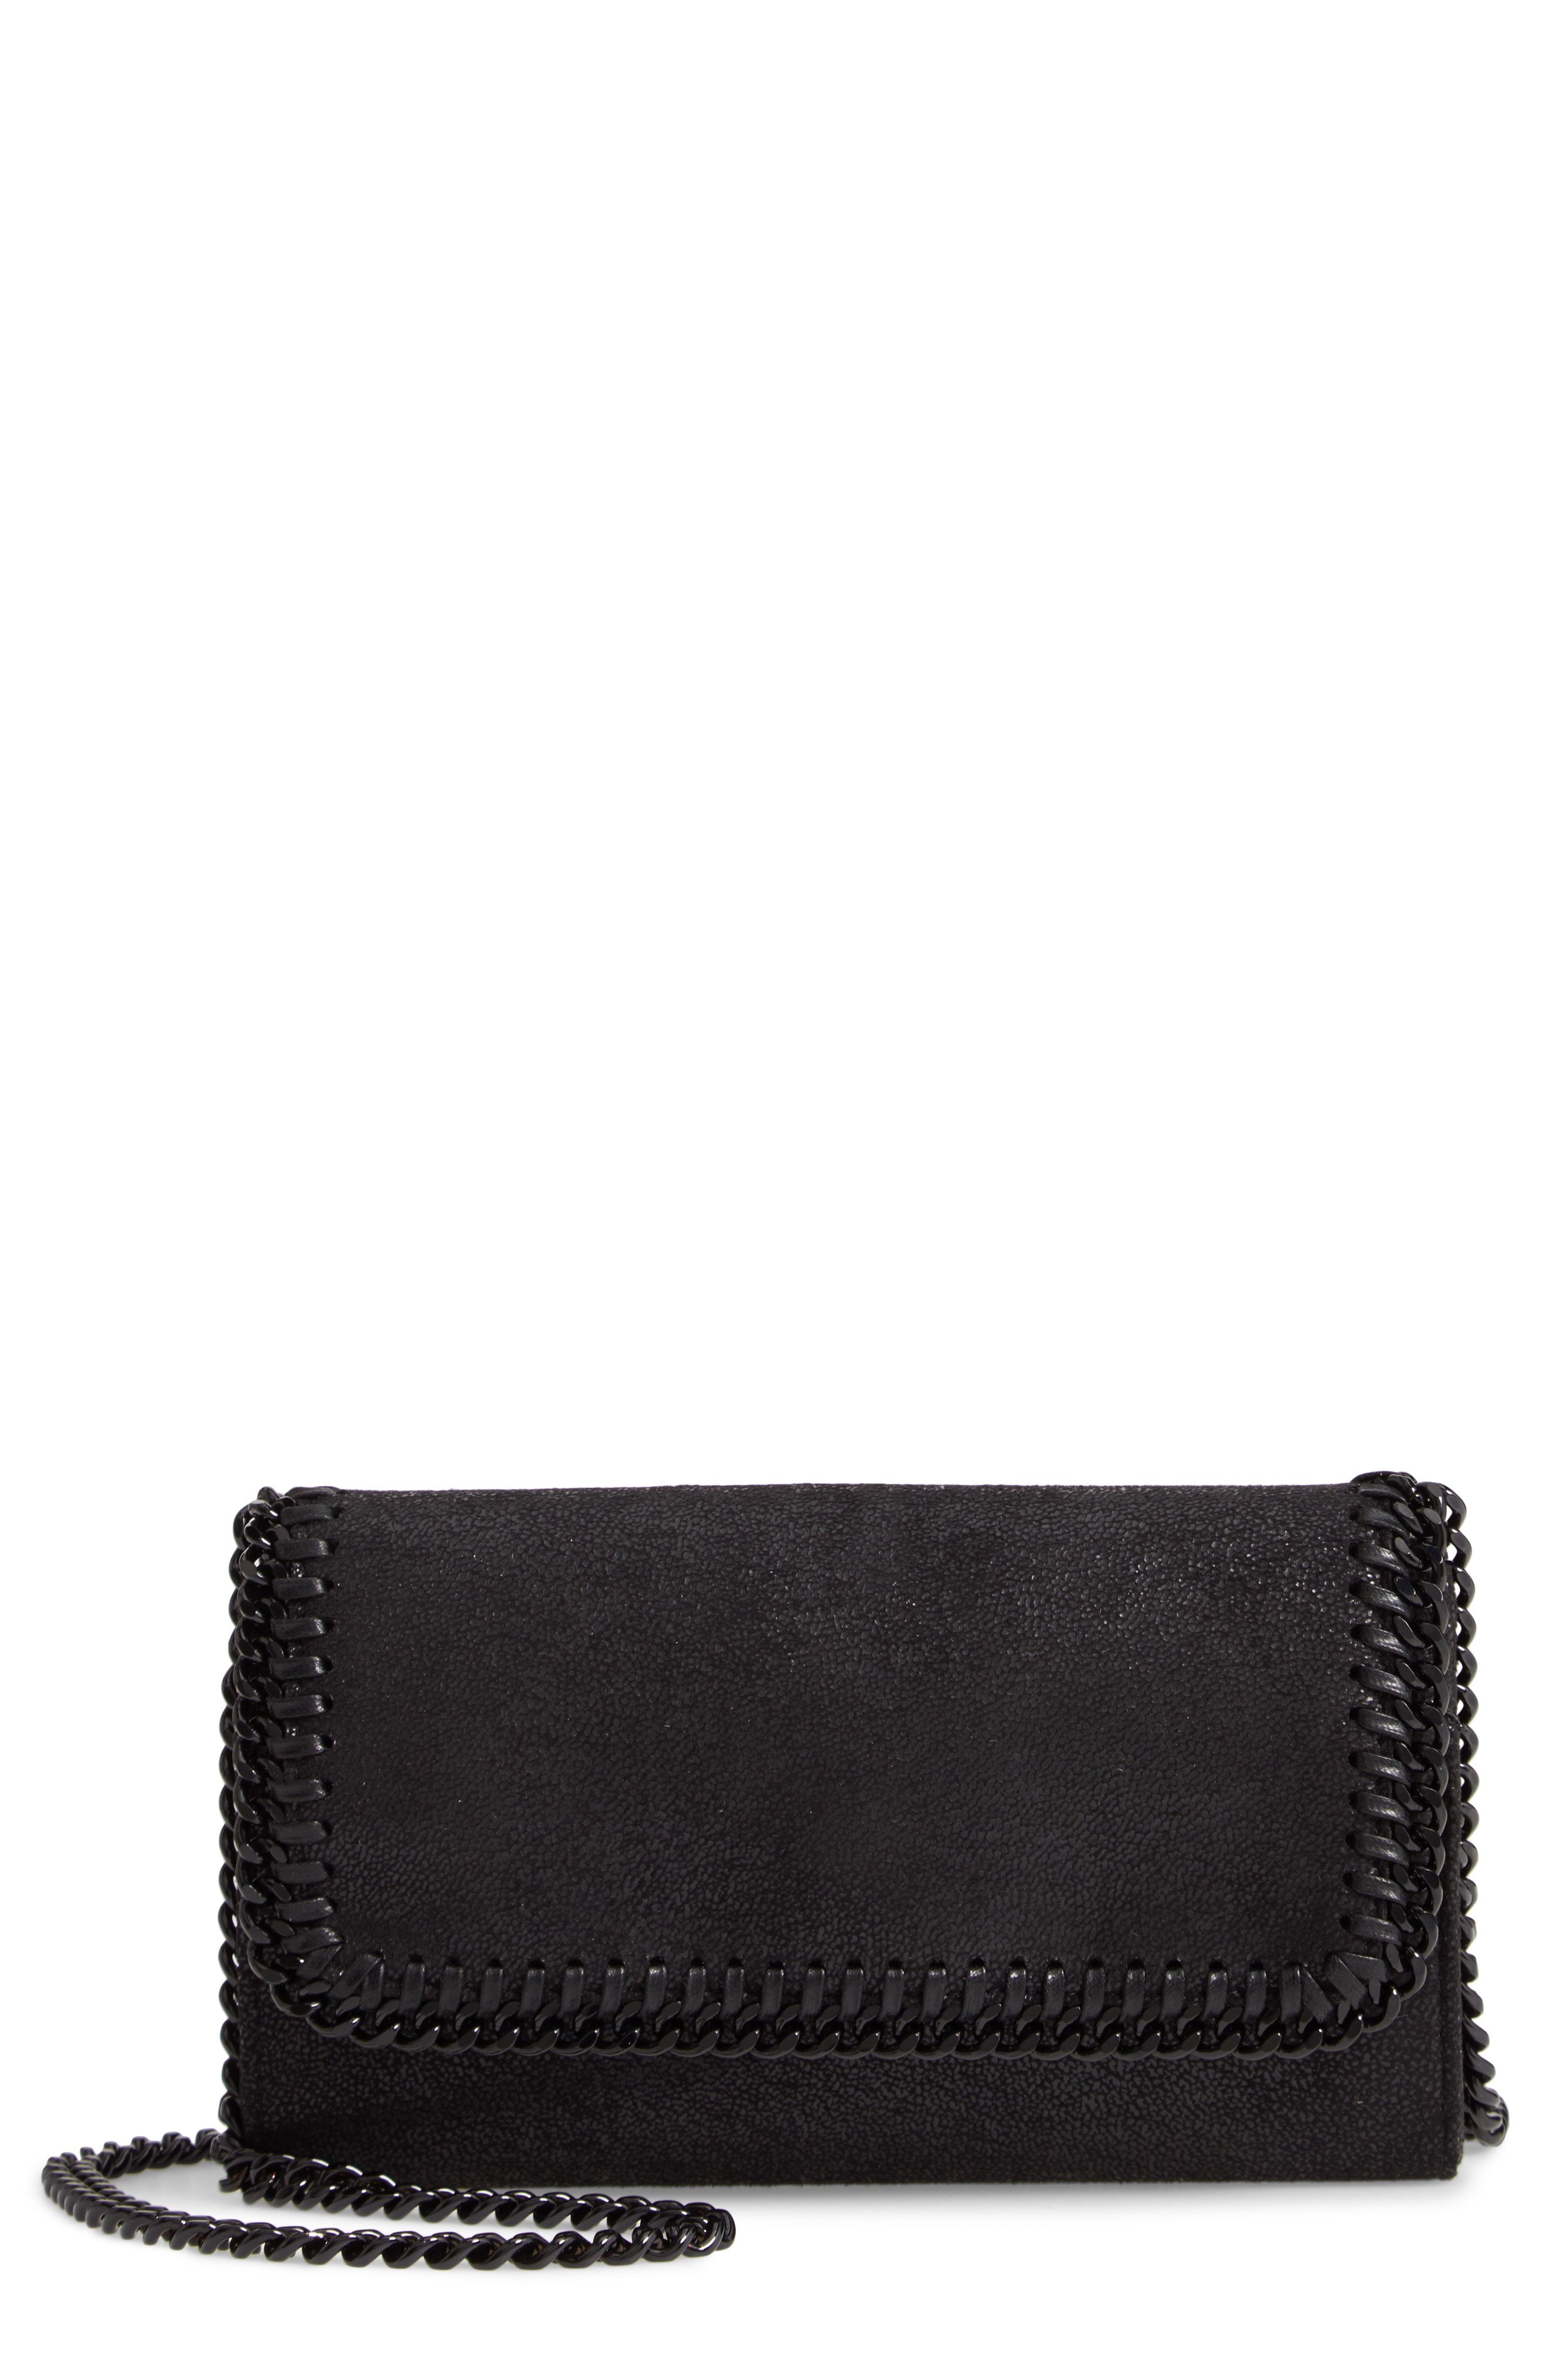 6665ec5adddf1 Stella McCartney Falabella Faux Leather Crossbody Bag available at   Nordstrom